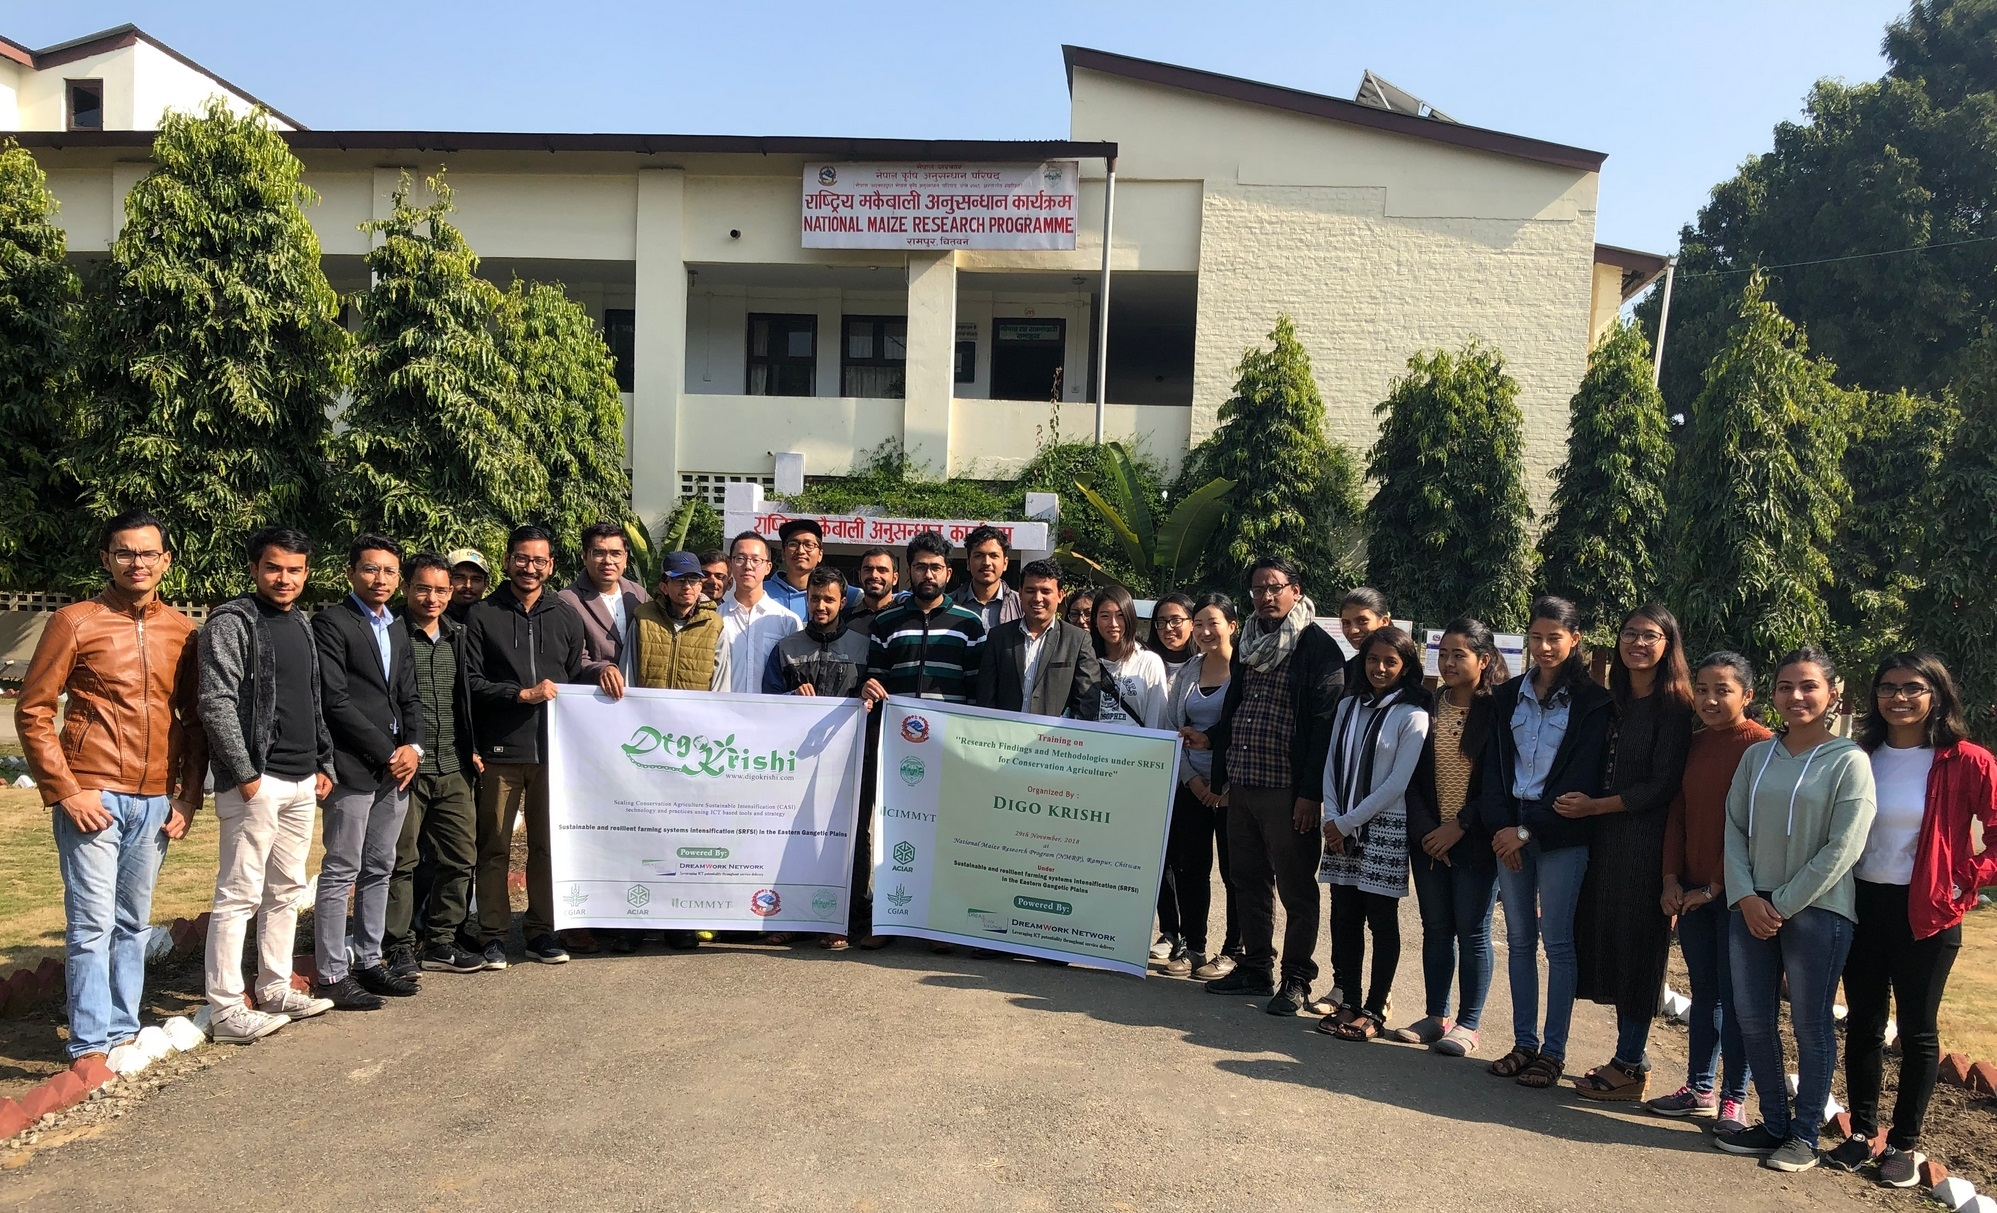 Participants in the 'Digo Krishi' project workshop managed by DreamWork Solution, with SRFSI project team members and students from the Agriculture and Forestry University (AFU) in Chitwan (Nepal).